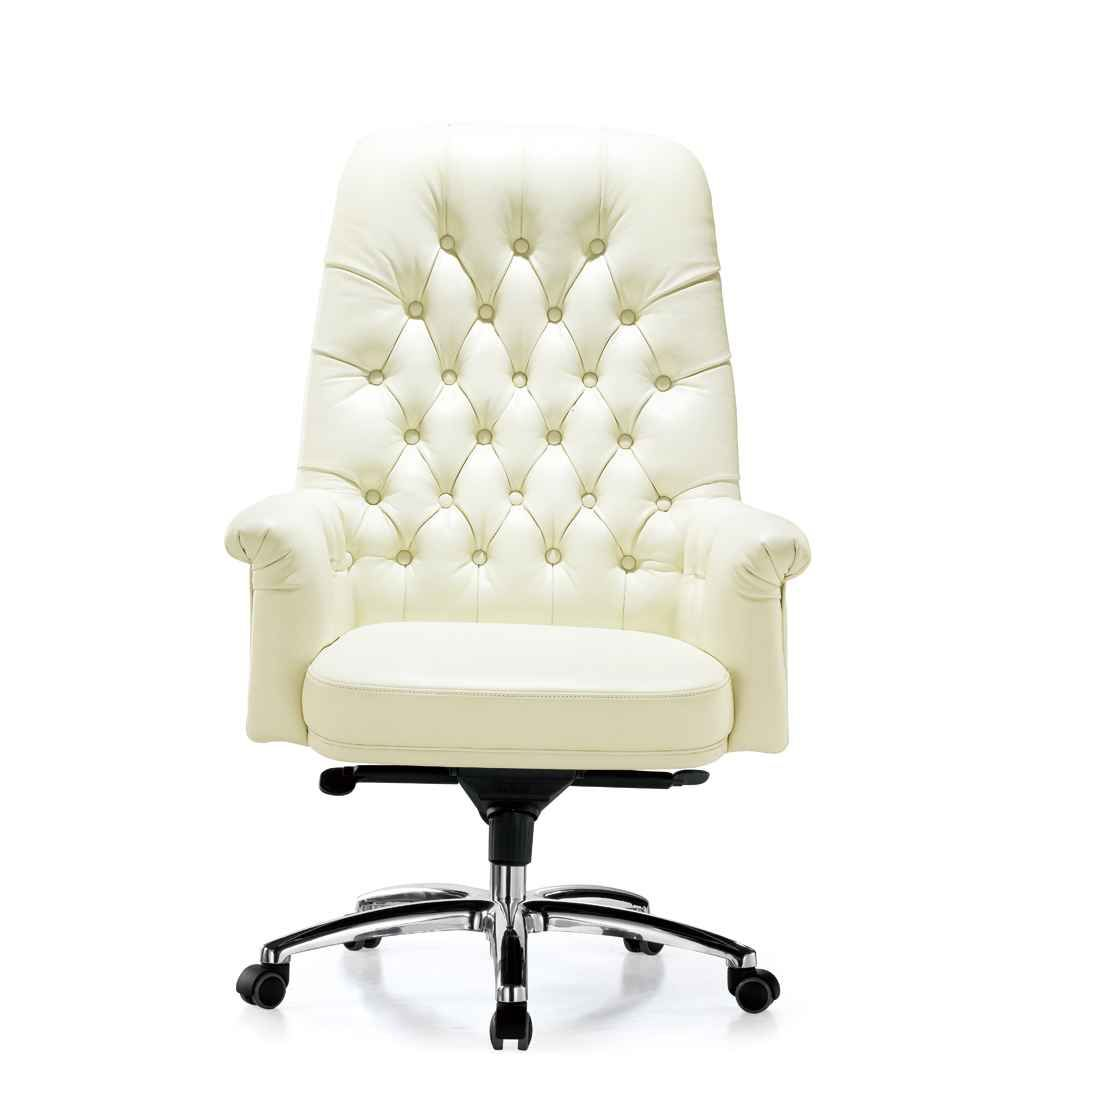 20 stylish and comfortable computer chair designs white for New chair design